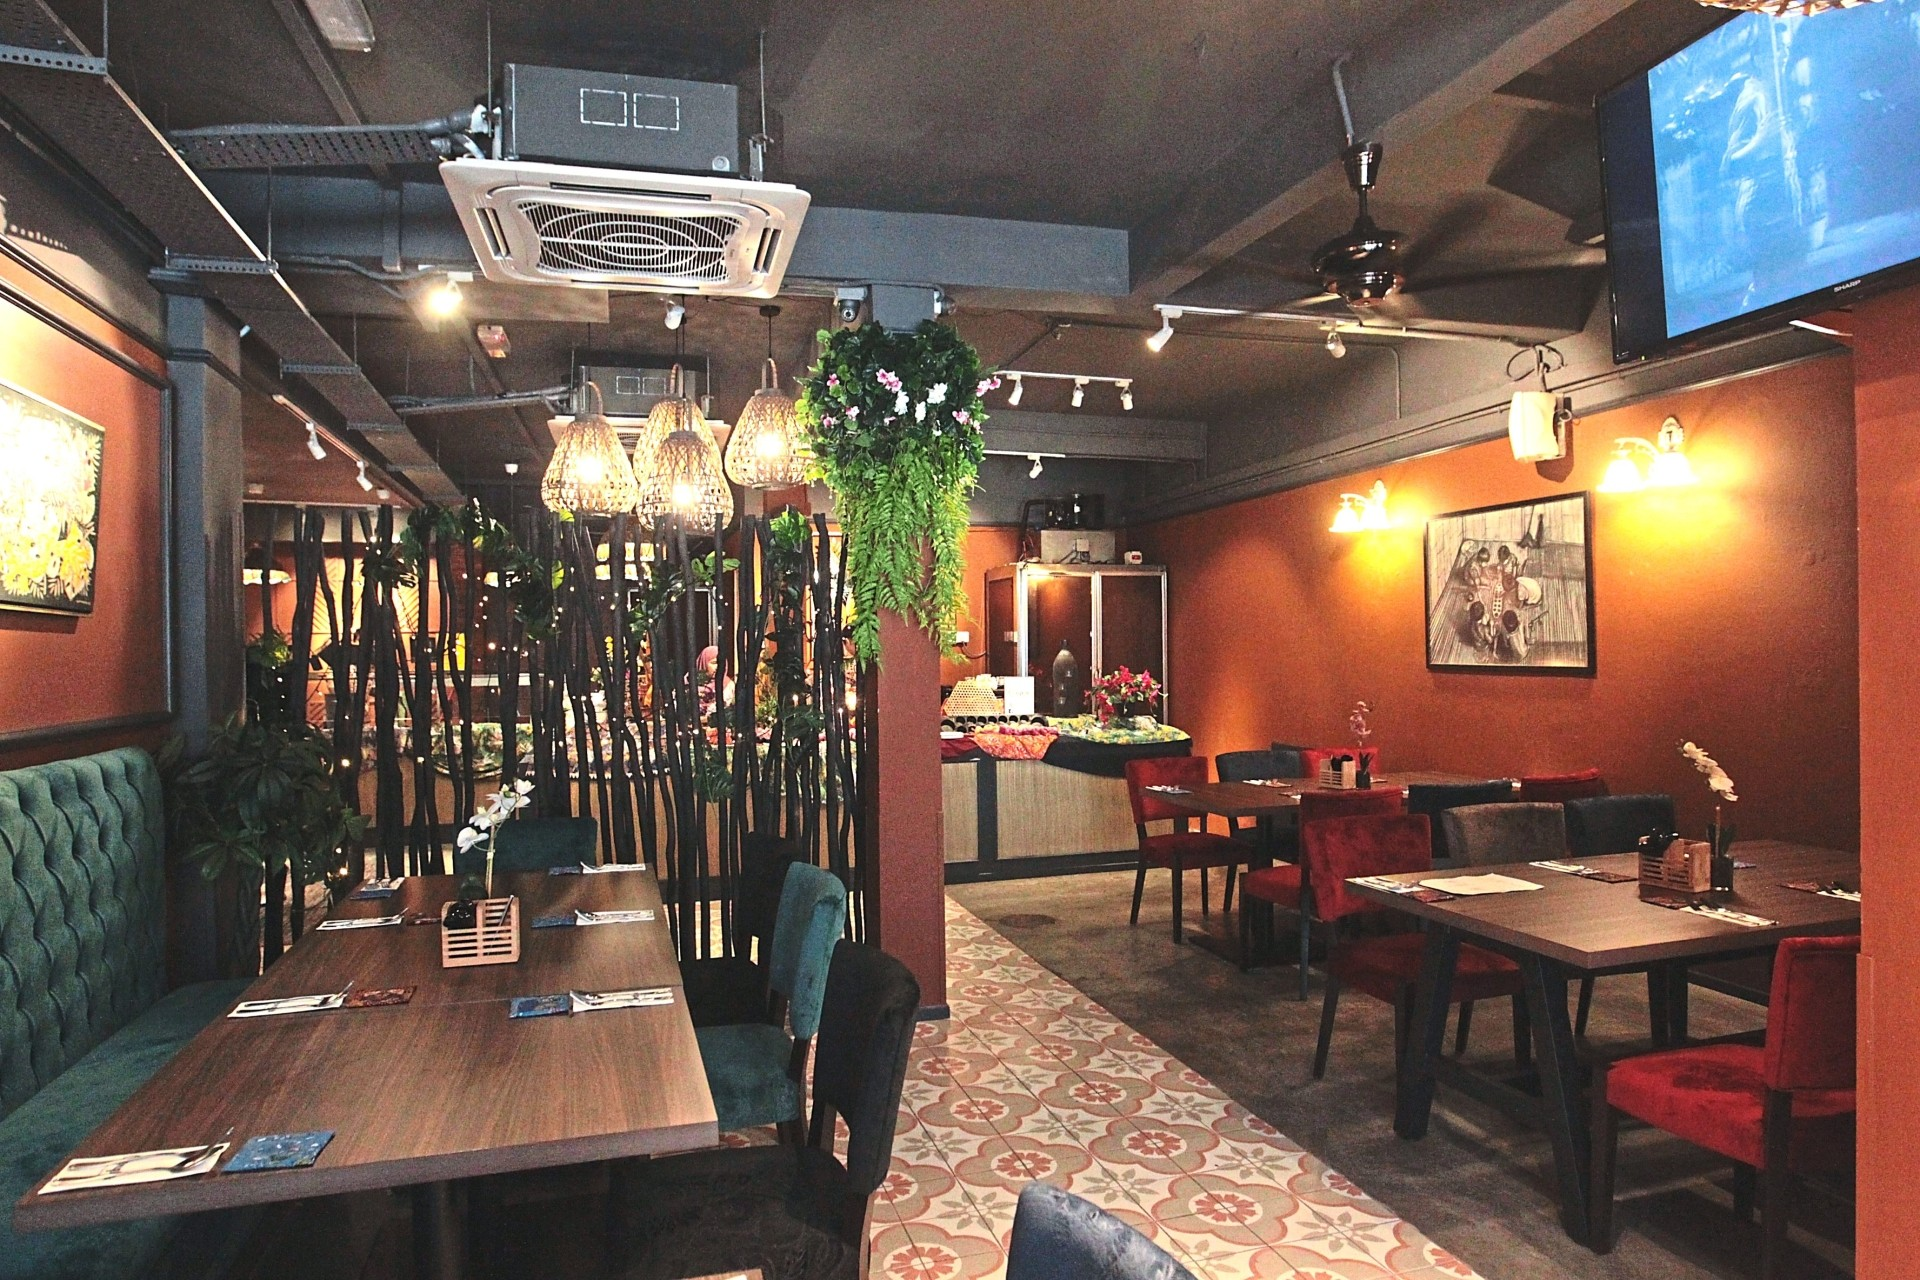 The restaurant has an old-fashioned quality to it, with modern, contemporary touches added here and there.